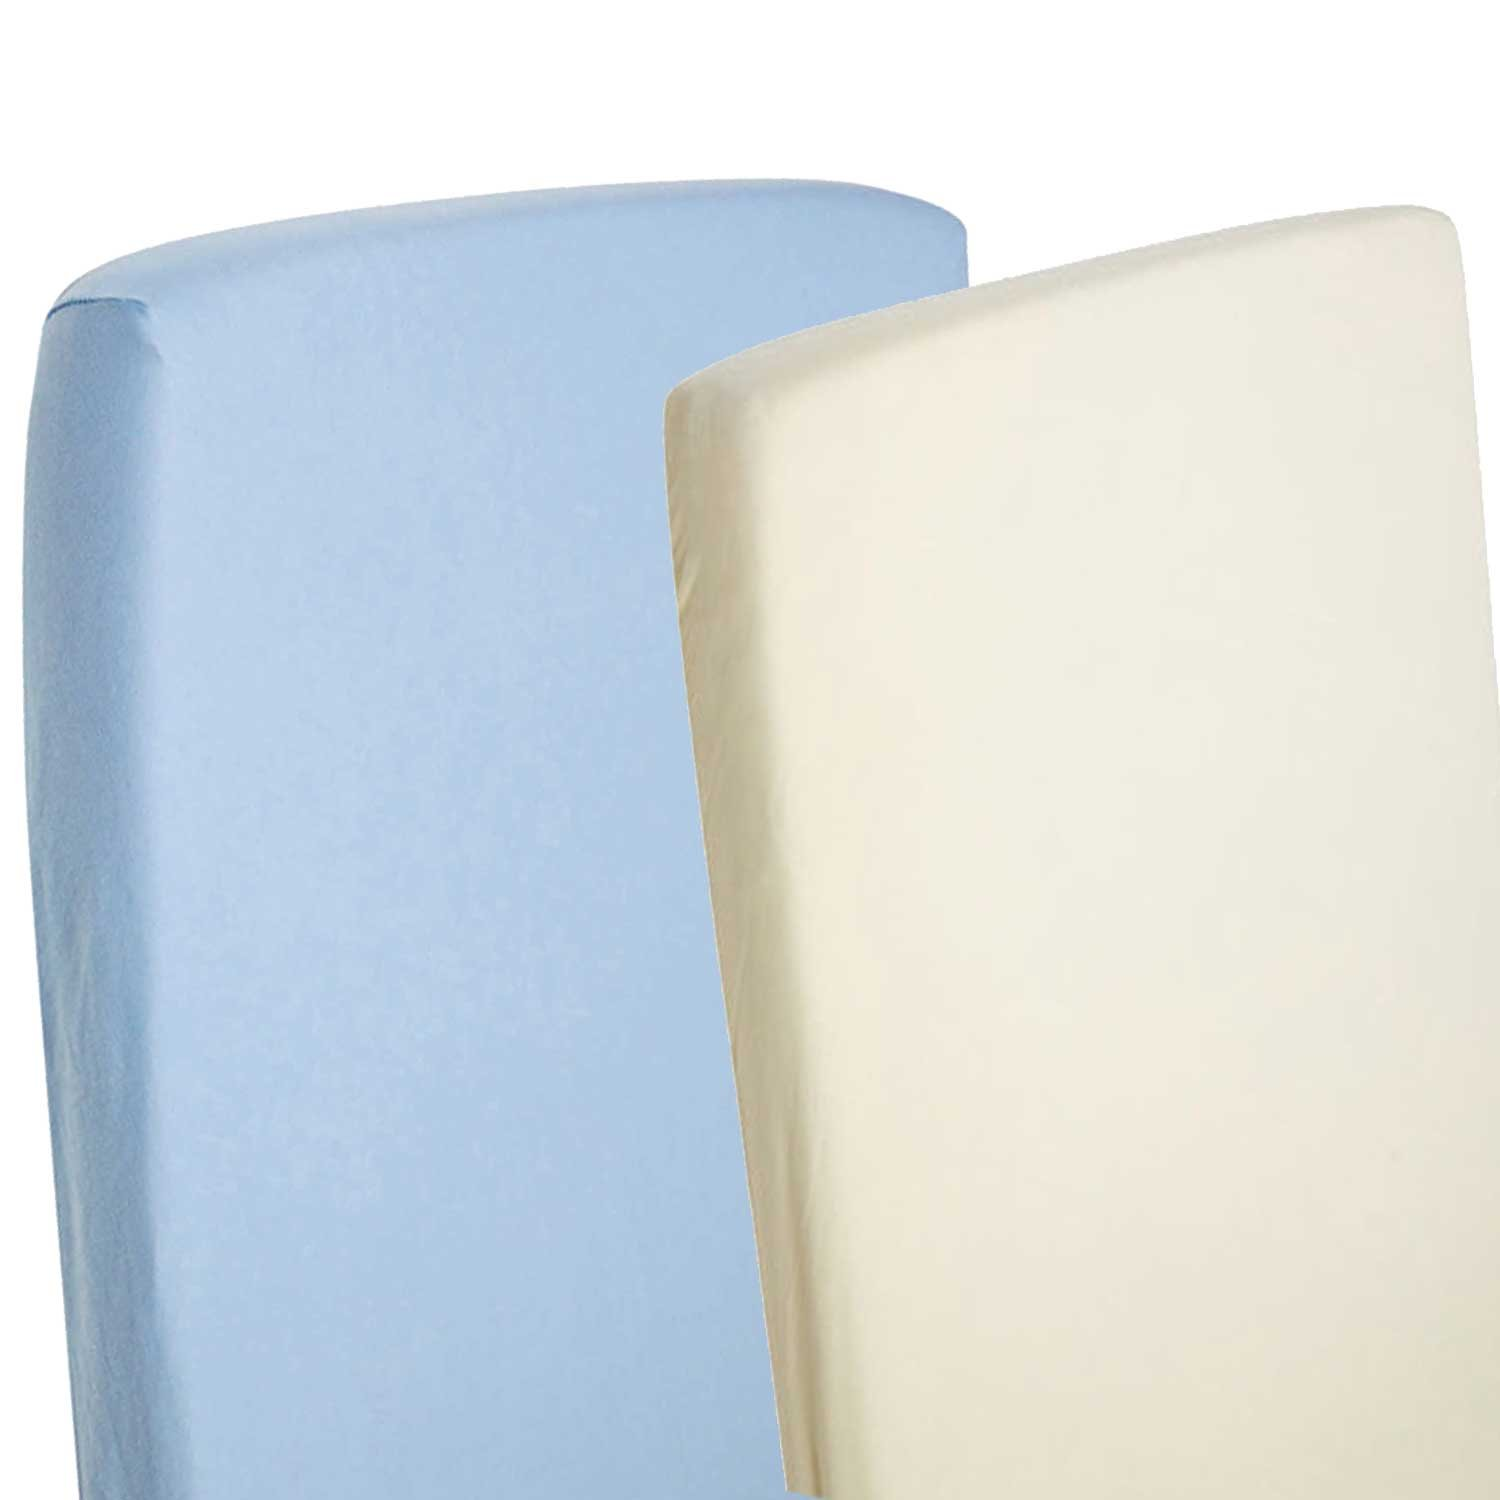 2x Fitted Sheets Compatible With Chicco Next 2 Me 100/% Cotton Blue-By For-Your-Little-One